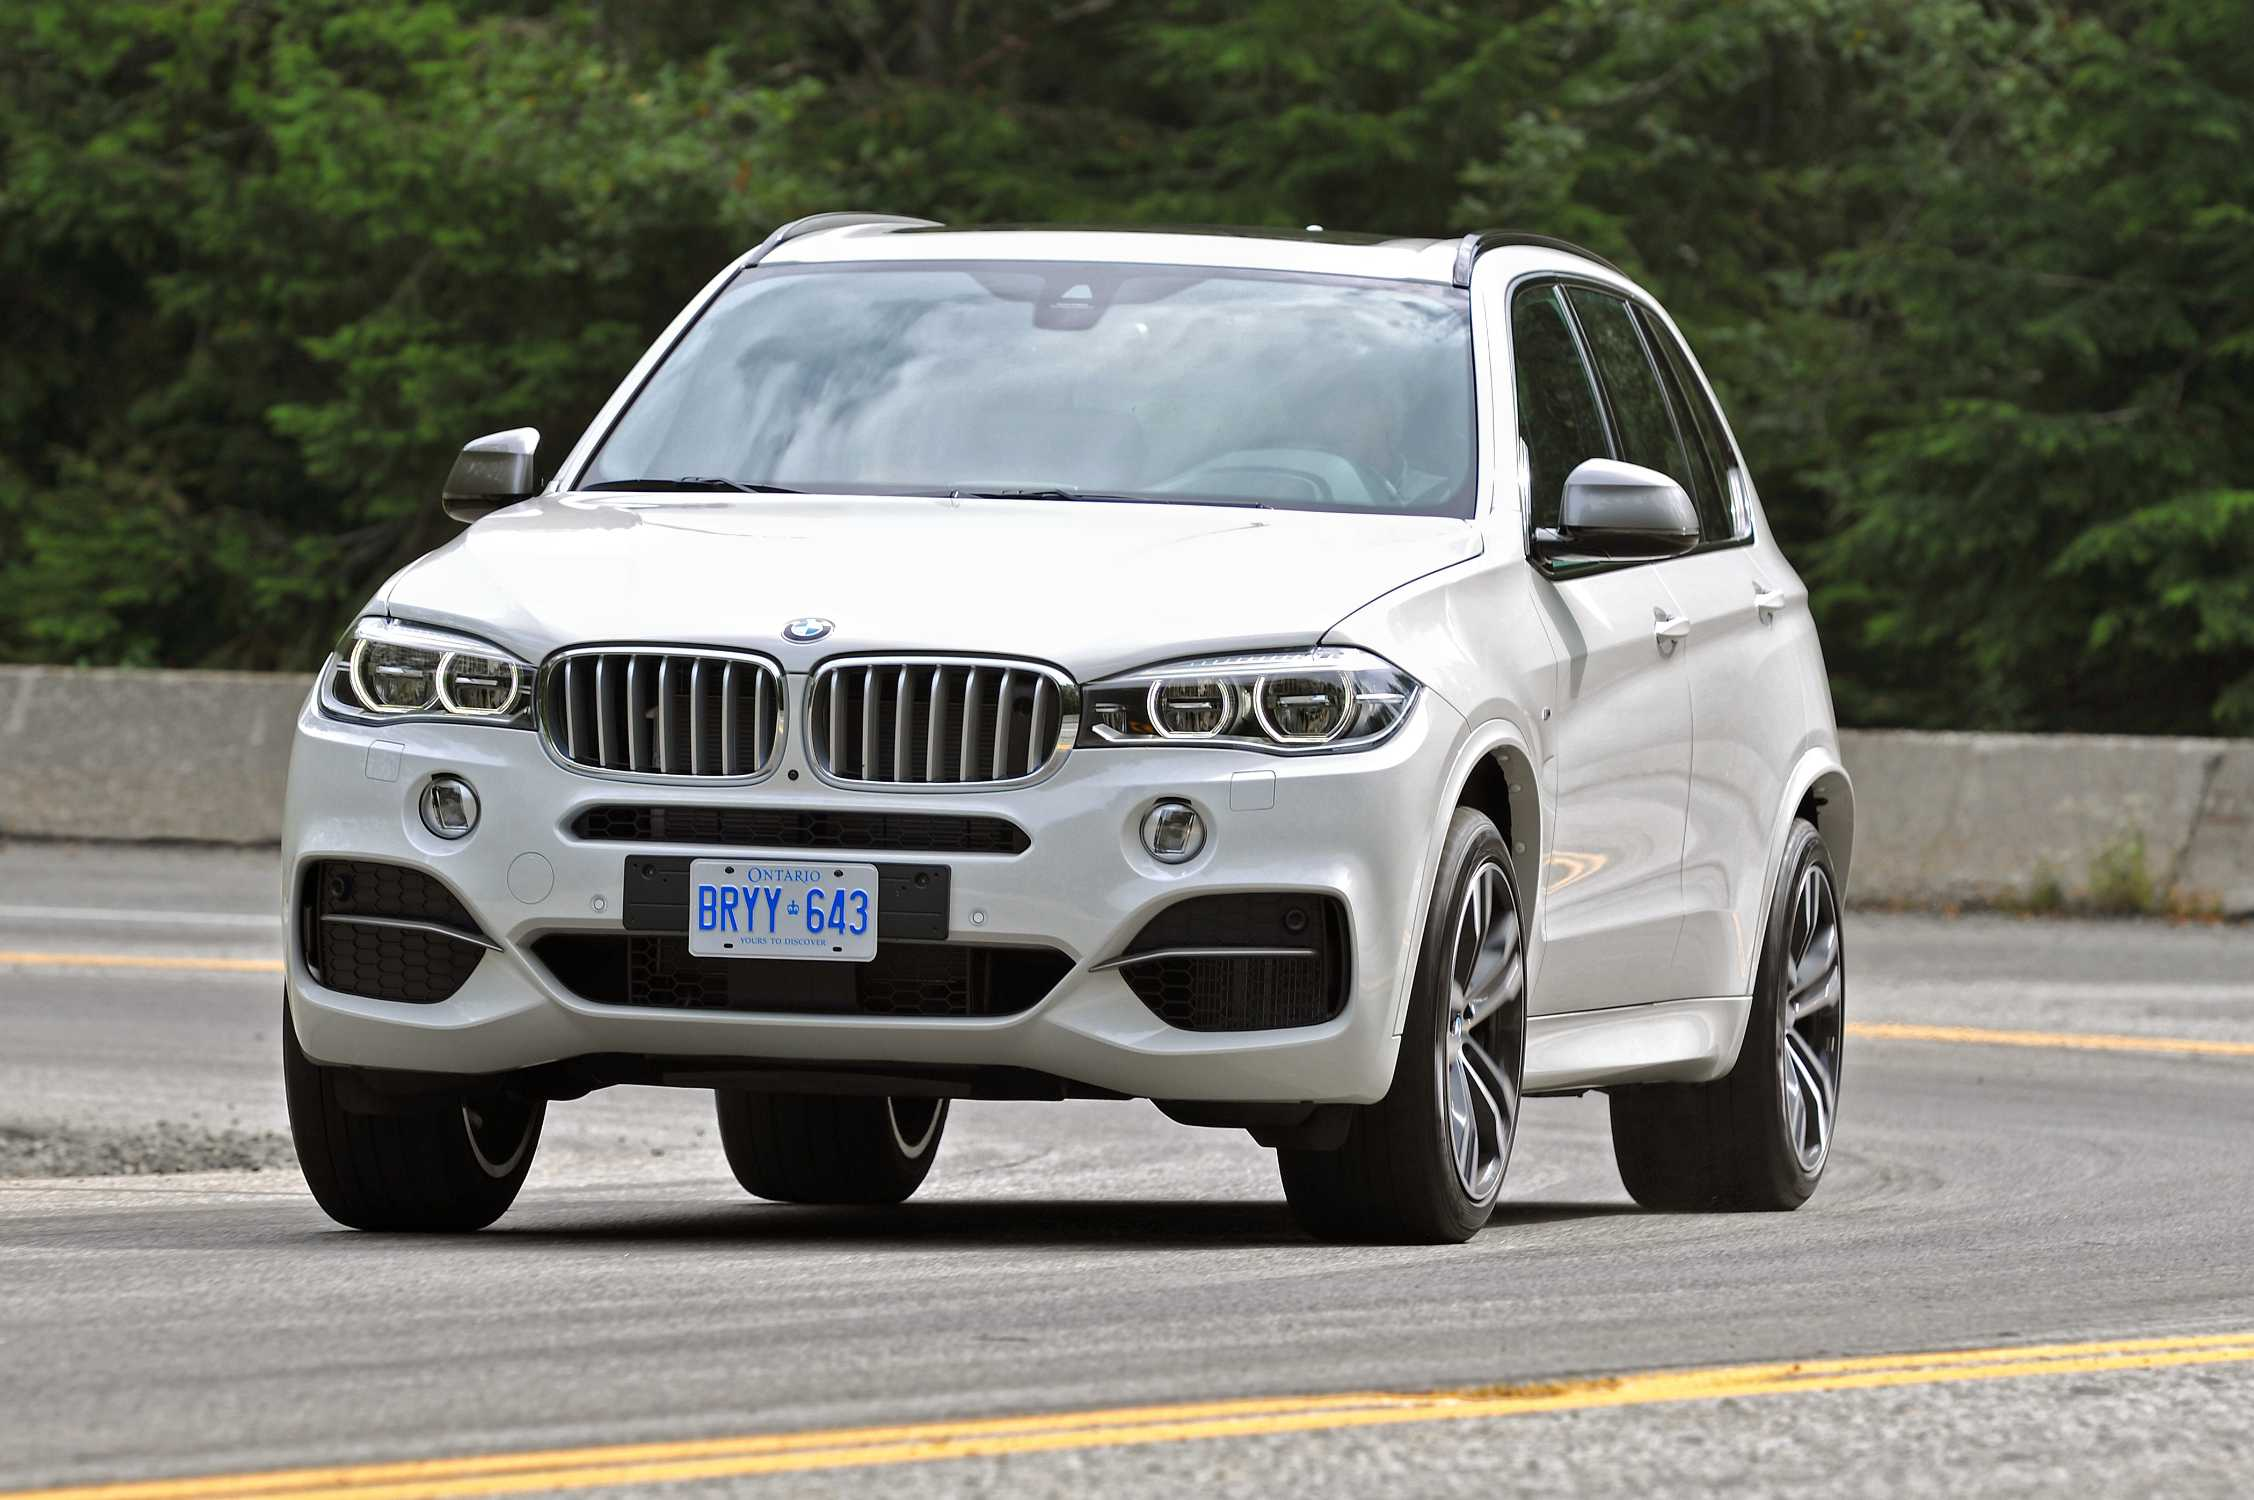 The New Bmw X5 M50d Bmw Individual And Original Bmw Accessories Dynamic Exclusive Versatile